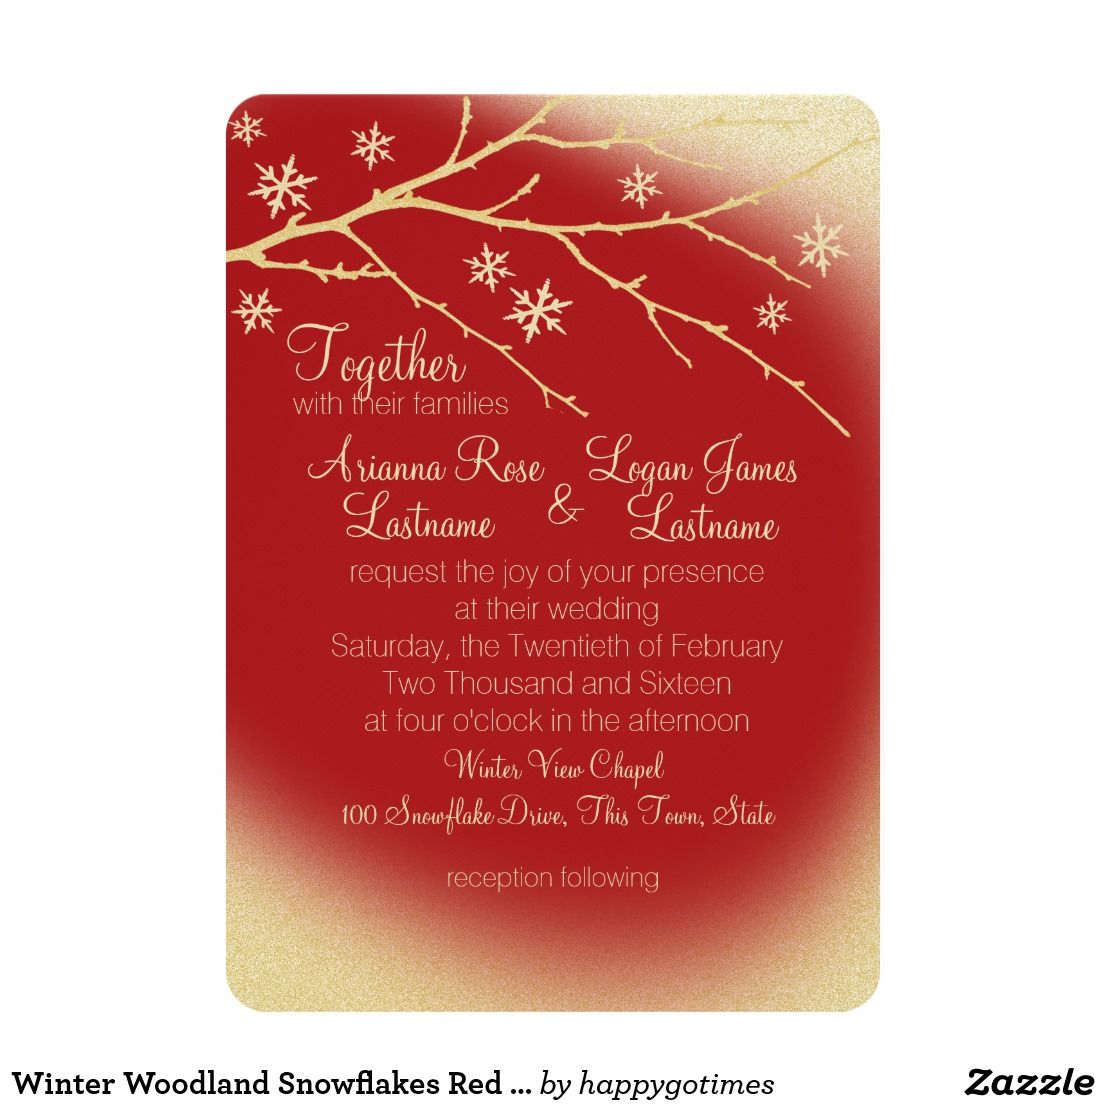 Winter Woodland Snowflakes Red and Gold Wedding Card Elegant winter ...